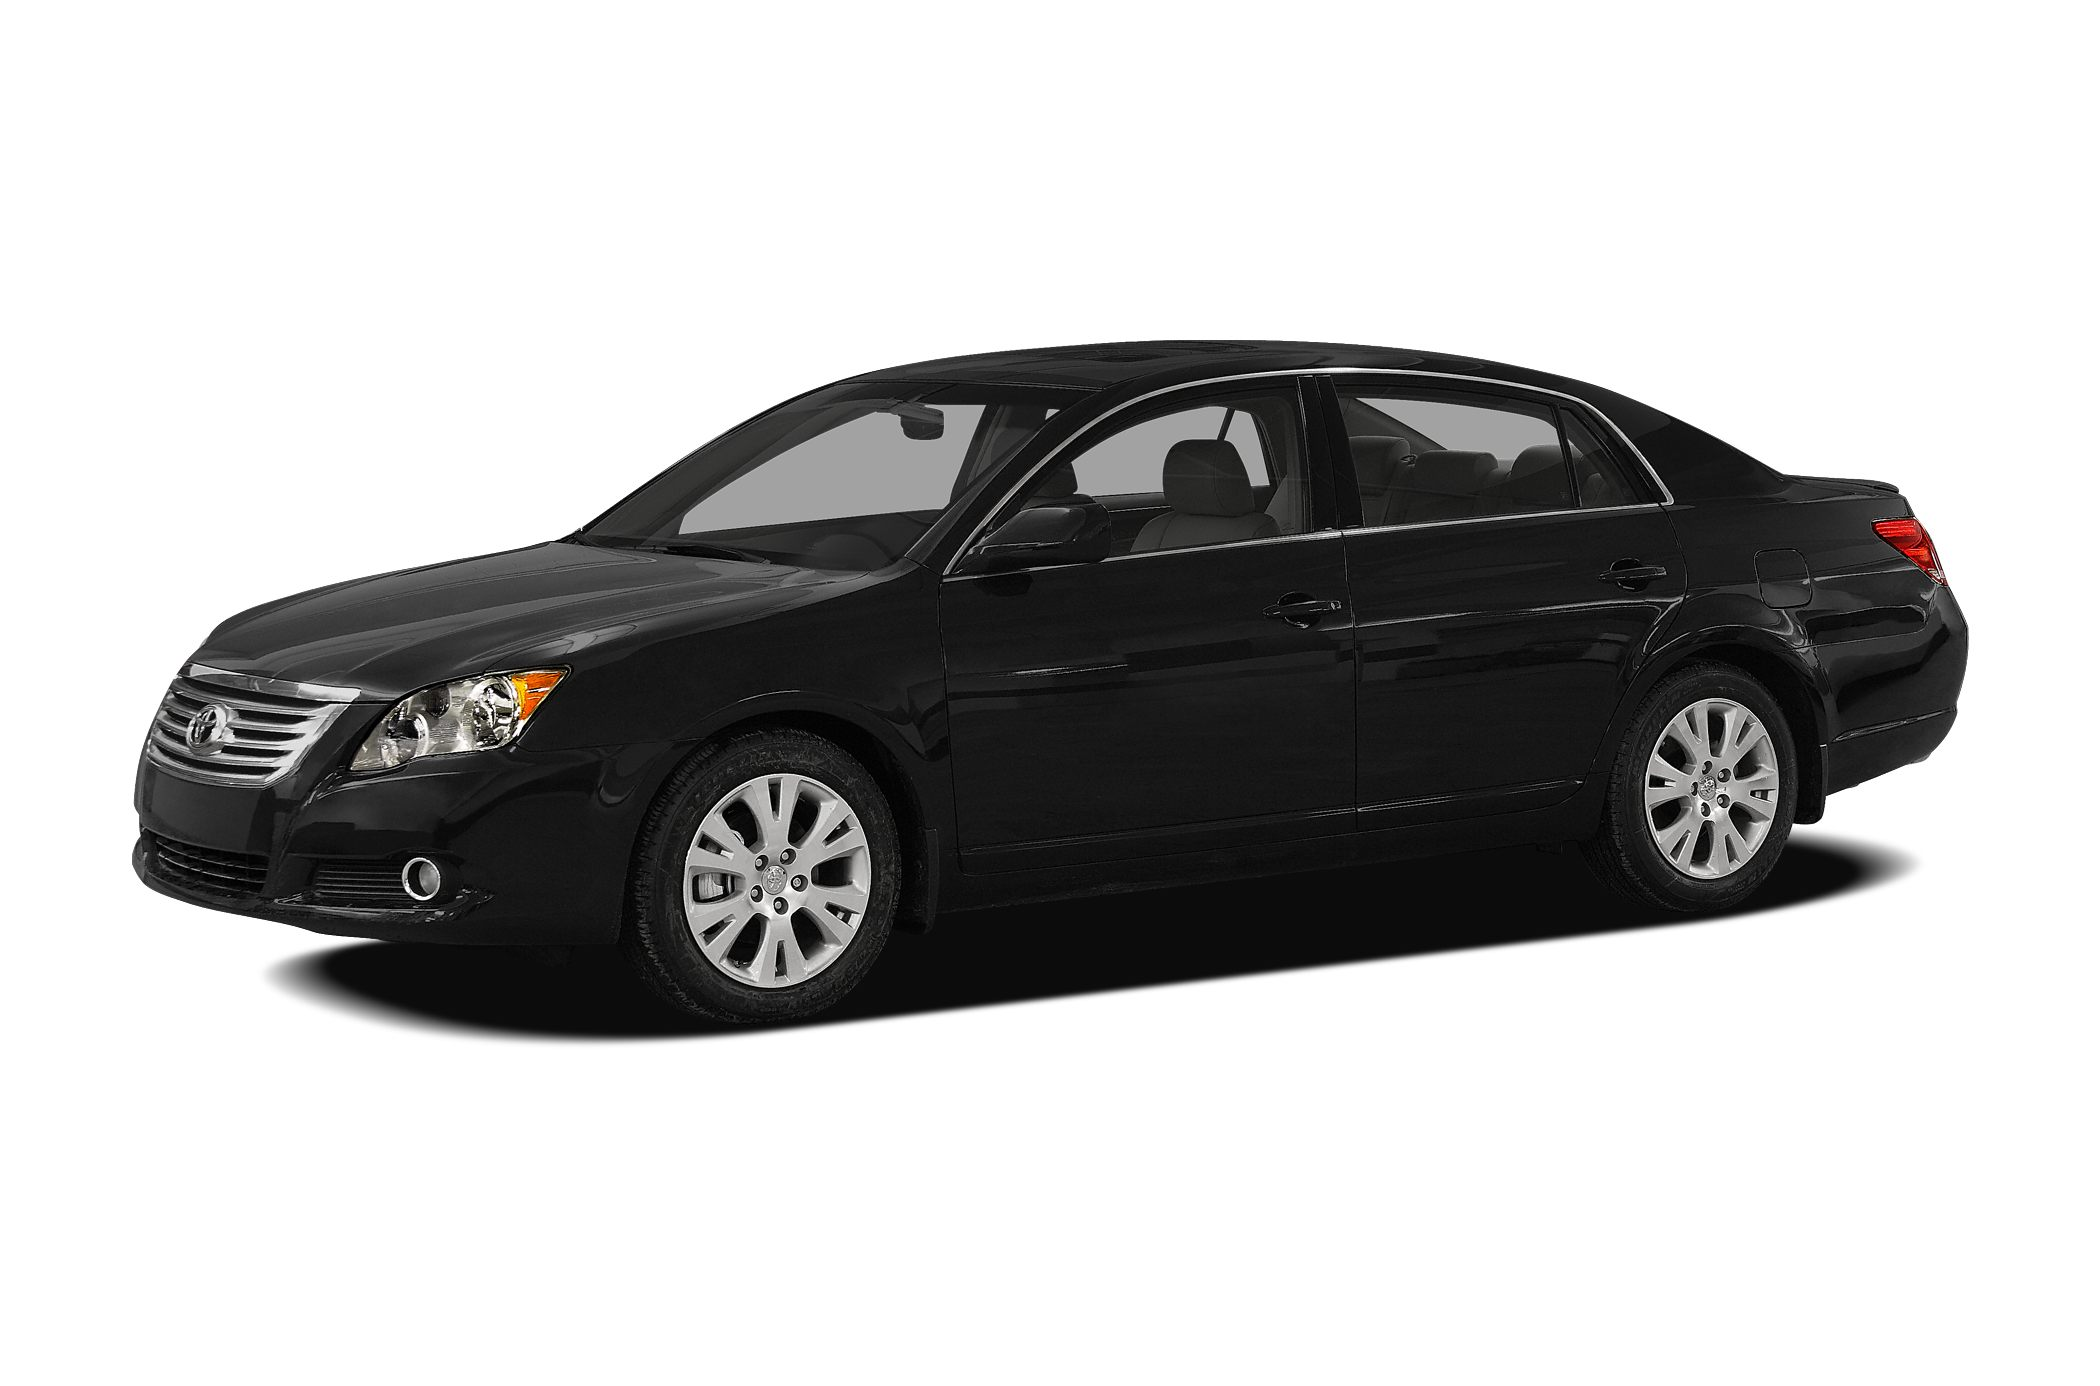 2009 Toyota Avalon XL Sedan for sale in Melbourne for $15,995 with 79,500 miles